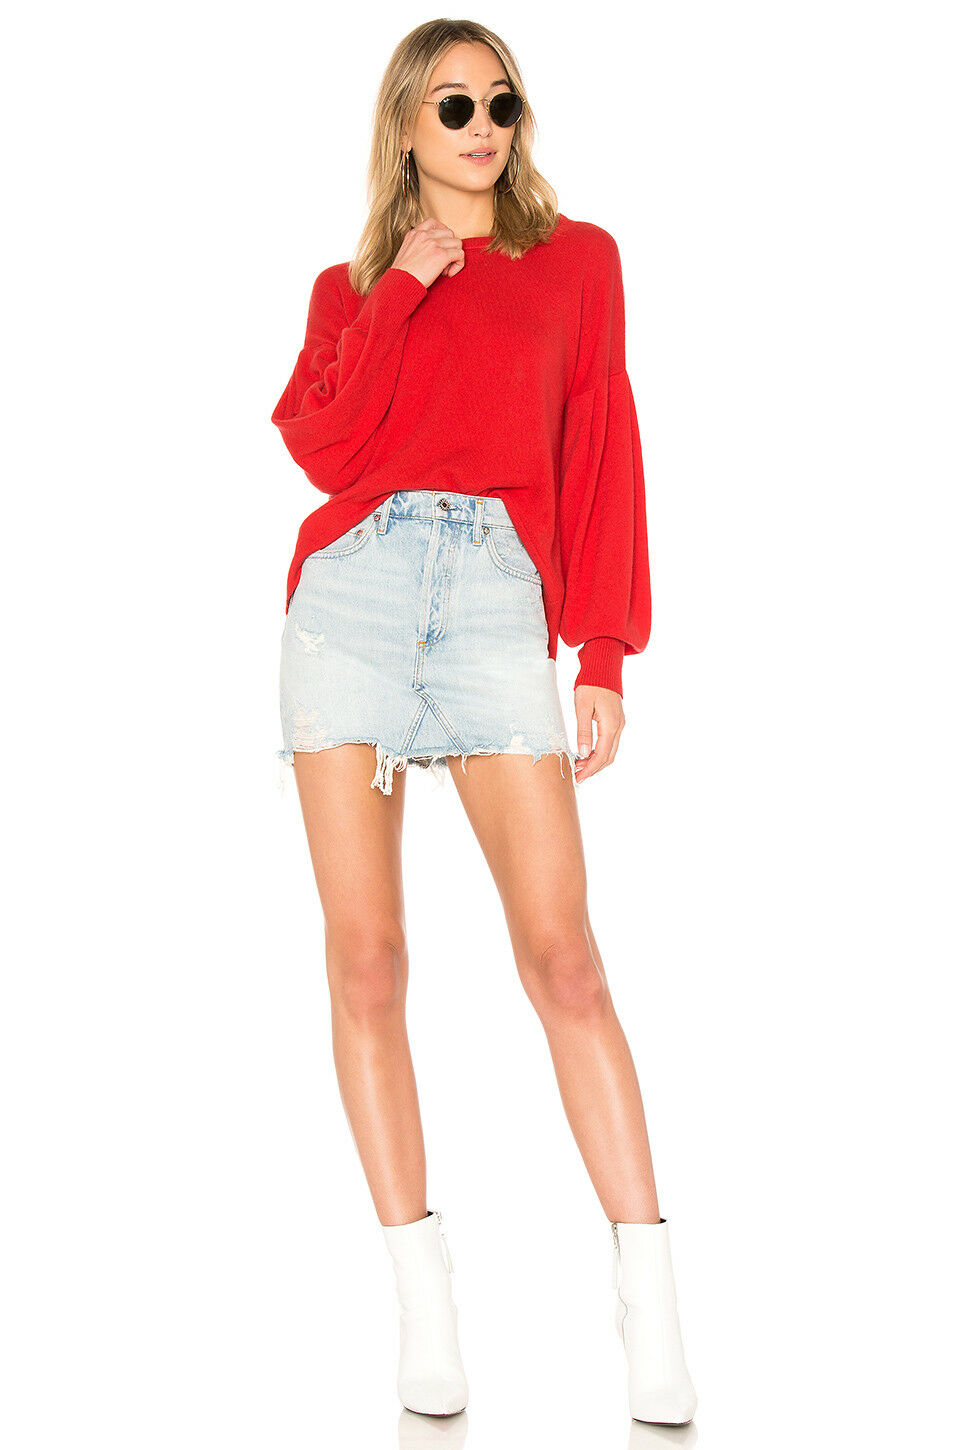 NWT Vince Pleated Pleated Pleated Sleeve Cashmere Crew Sweater Poppy Size S  345 21aa88